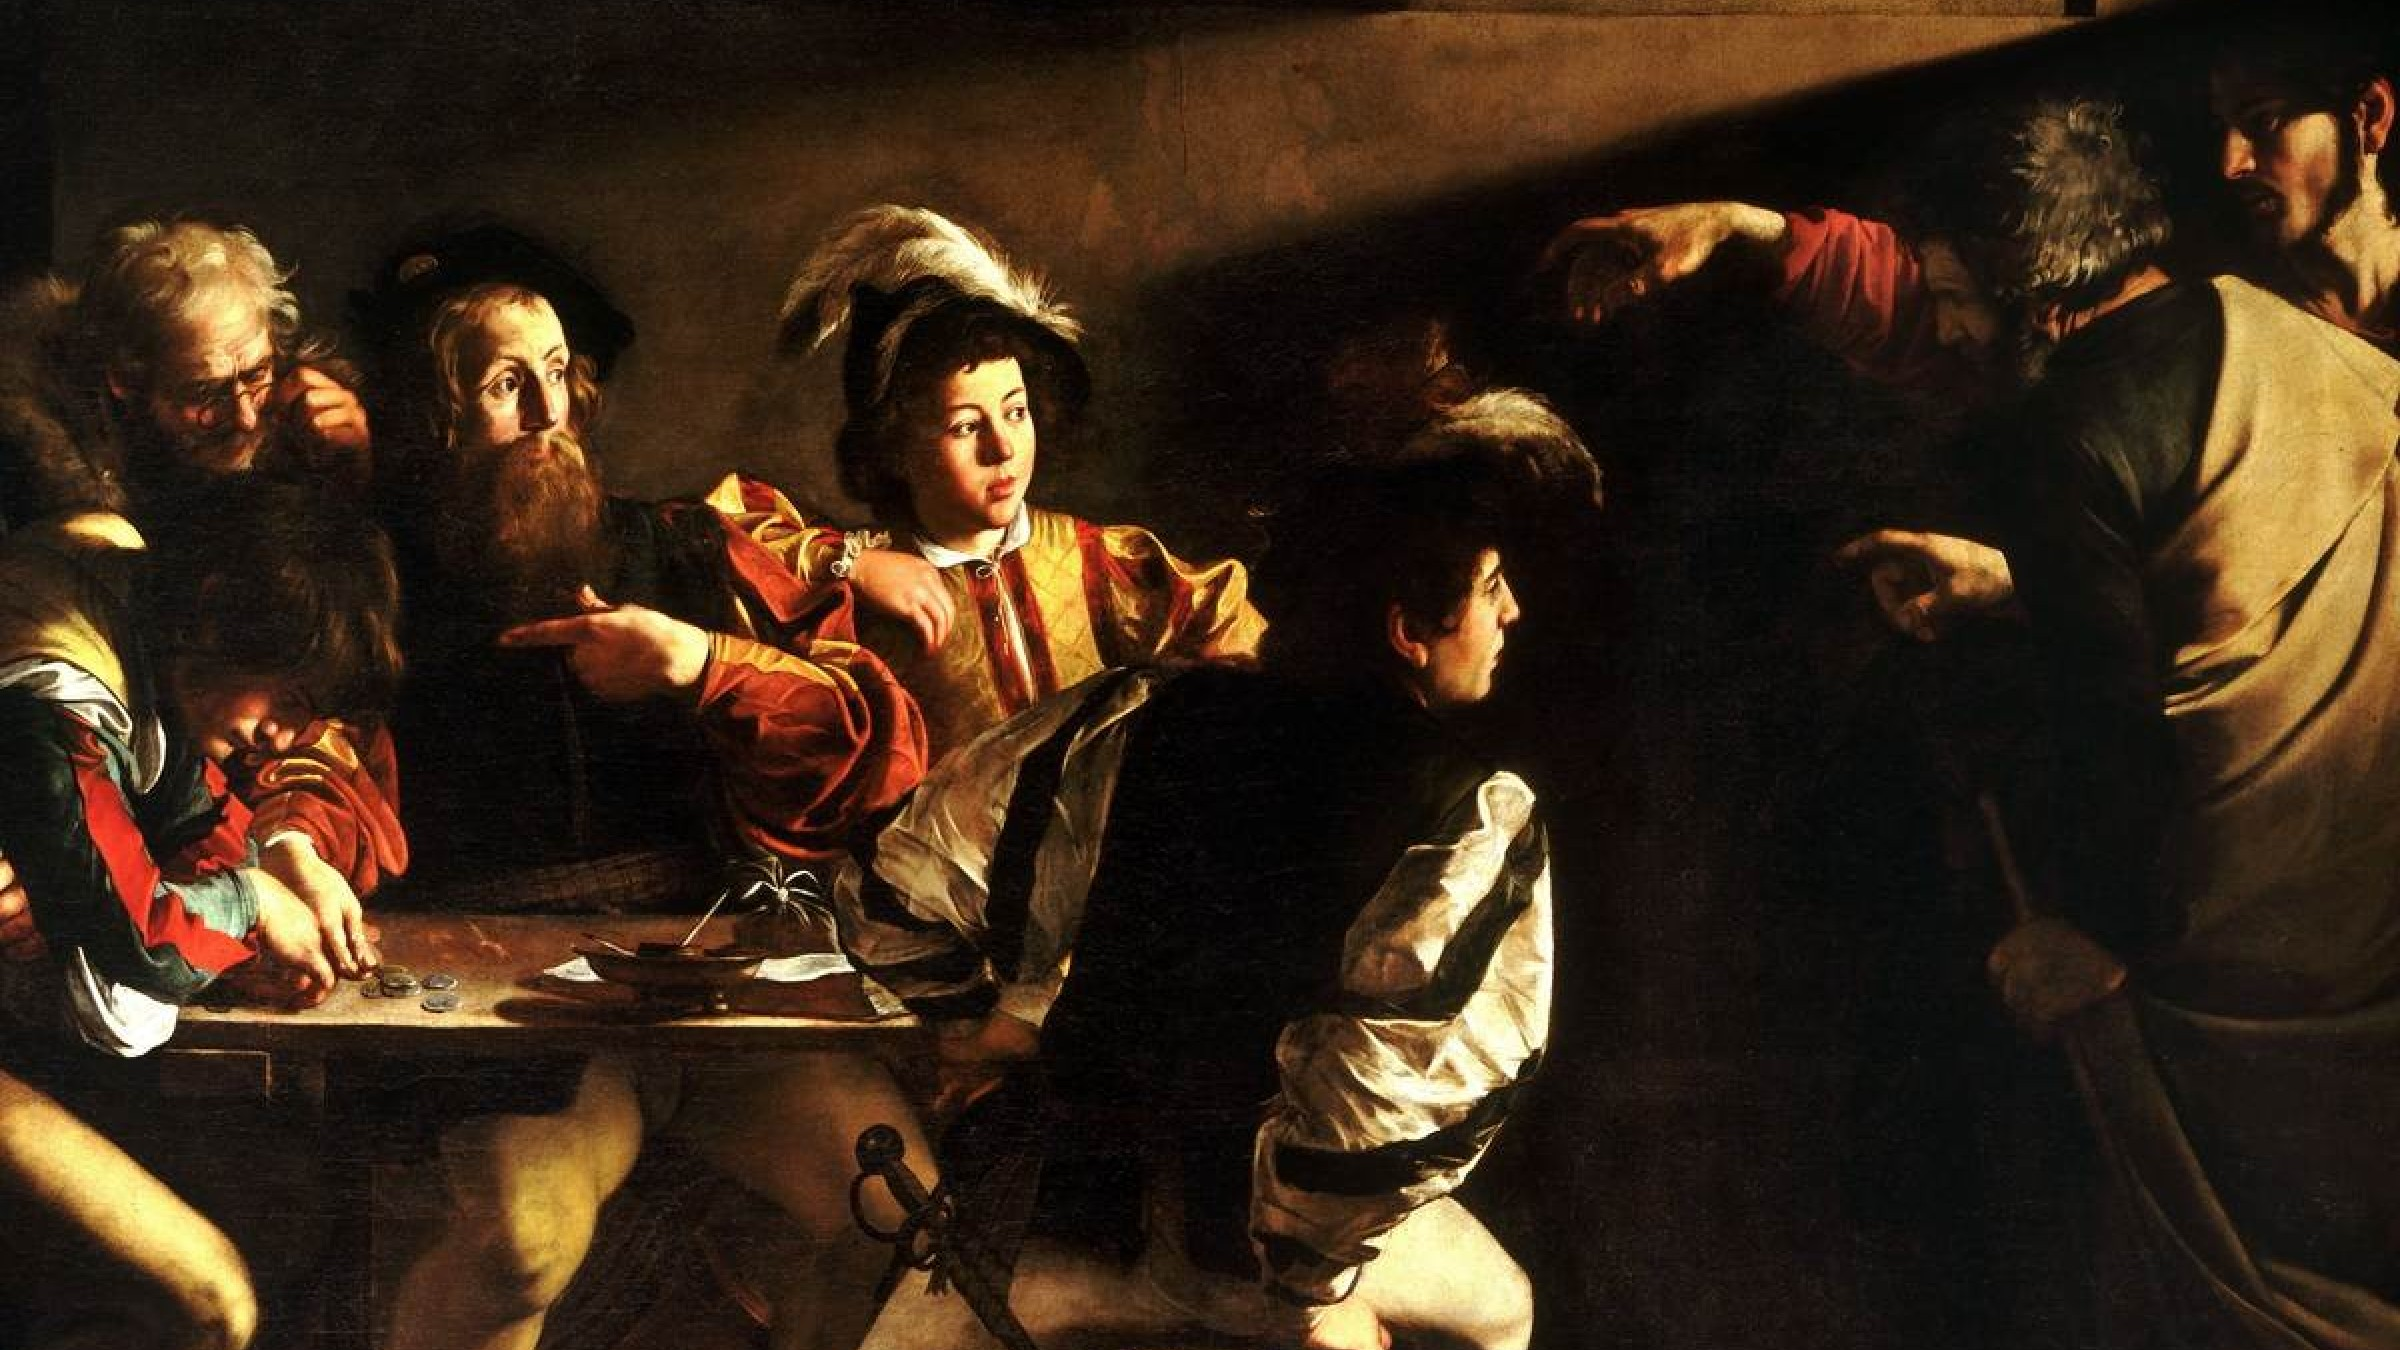 Caravaggio Painting Discovered in Attic Could Fetch $171